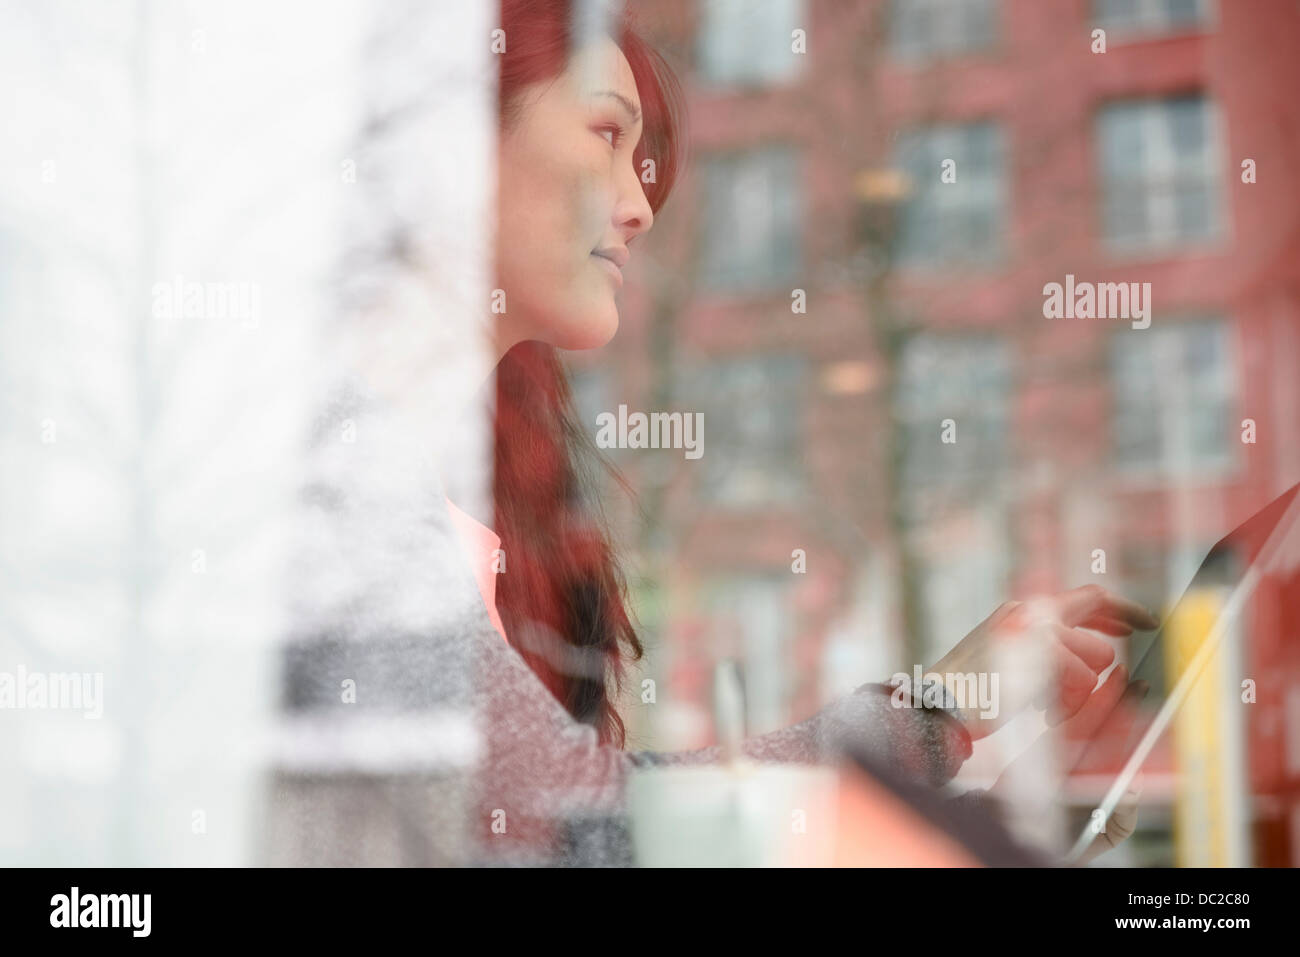 Woman with digital tablet looking out of glass window - Stock Image